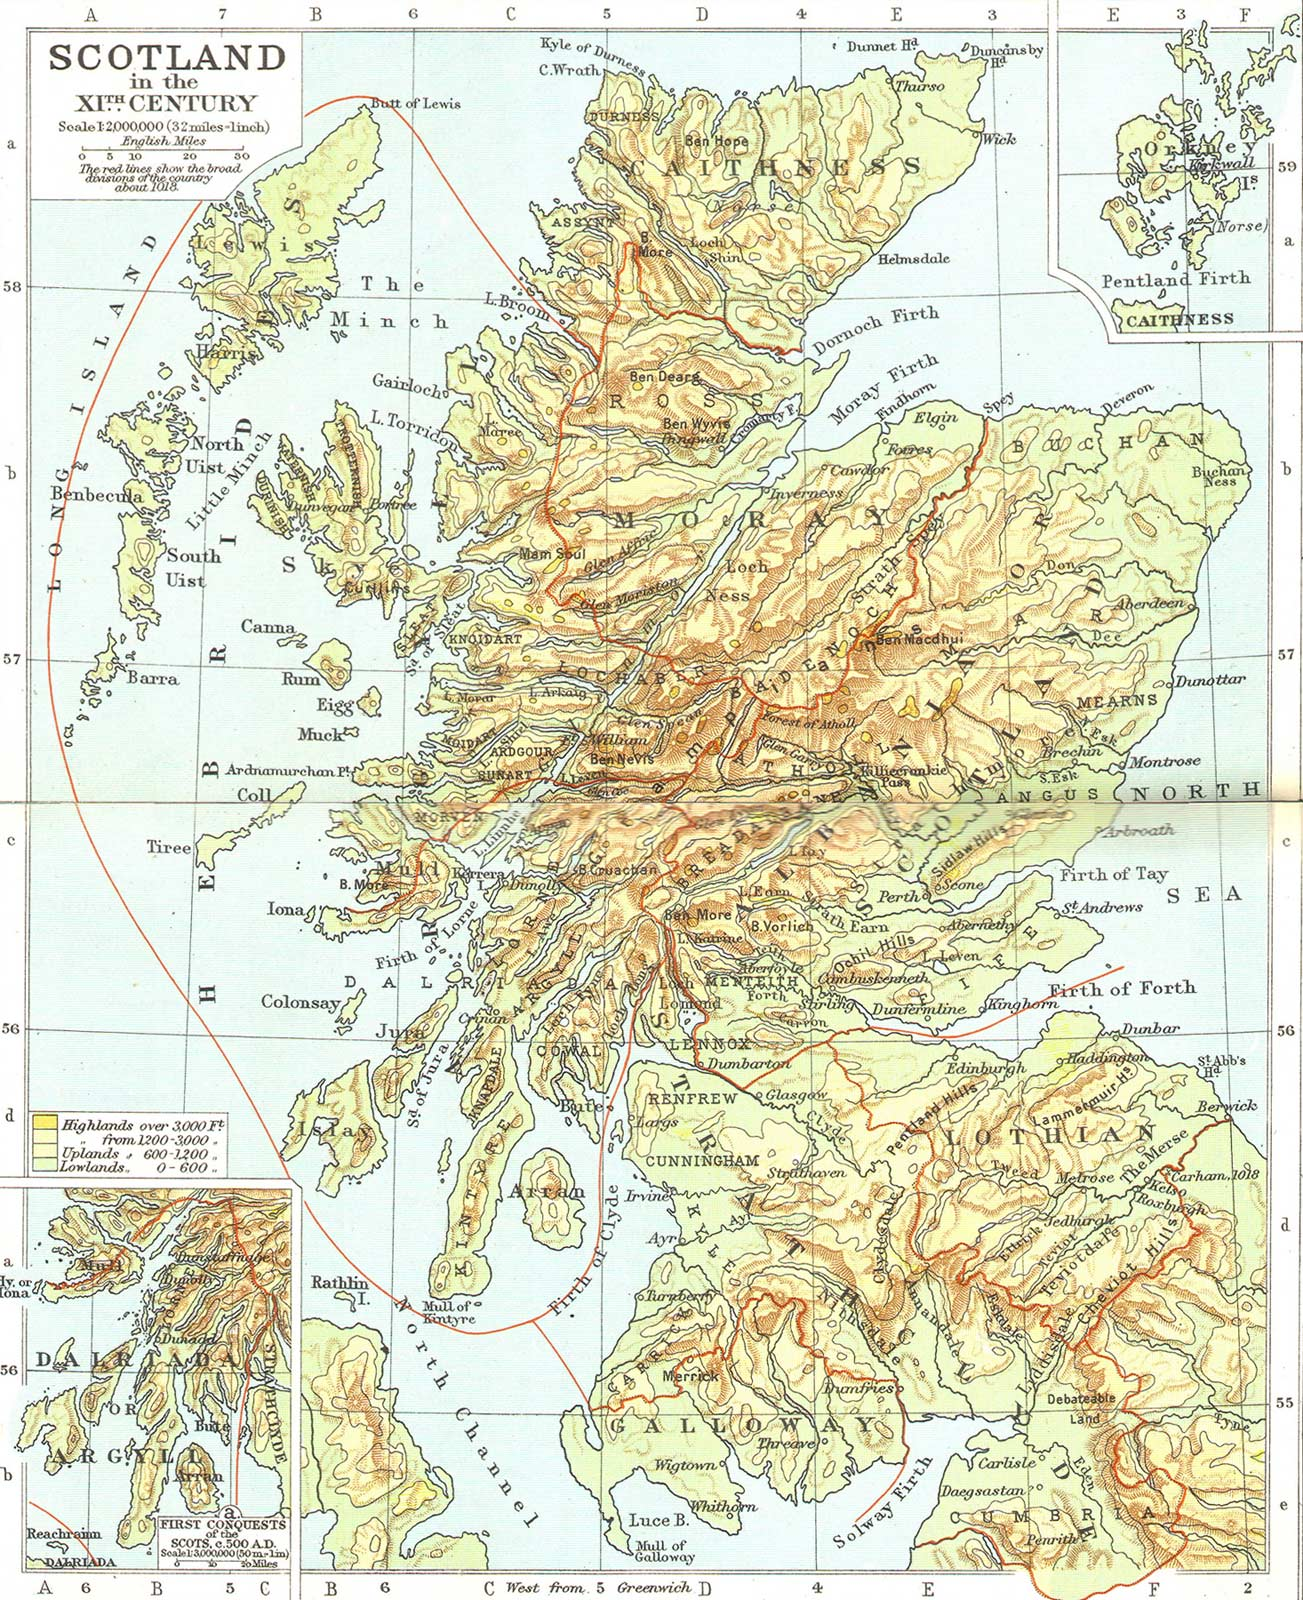 Old Map of Scotland • Mapsof net